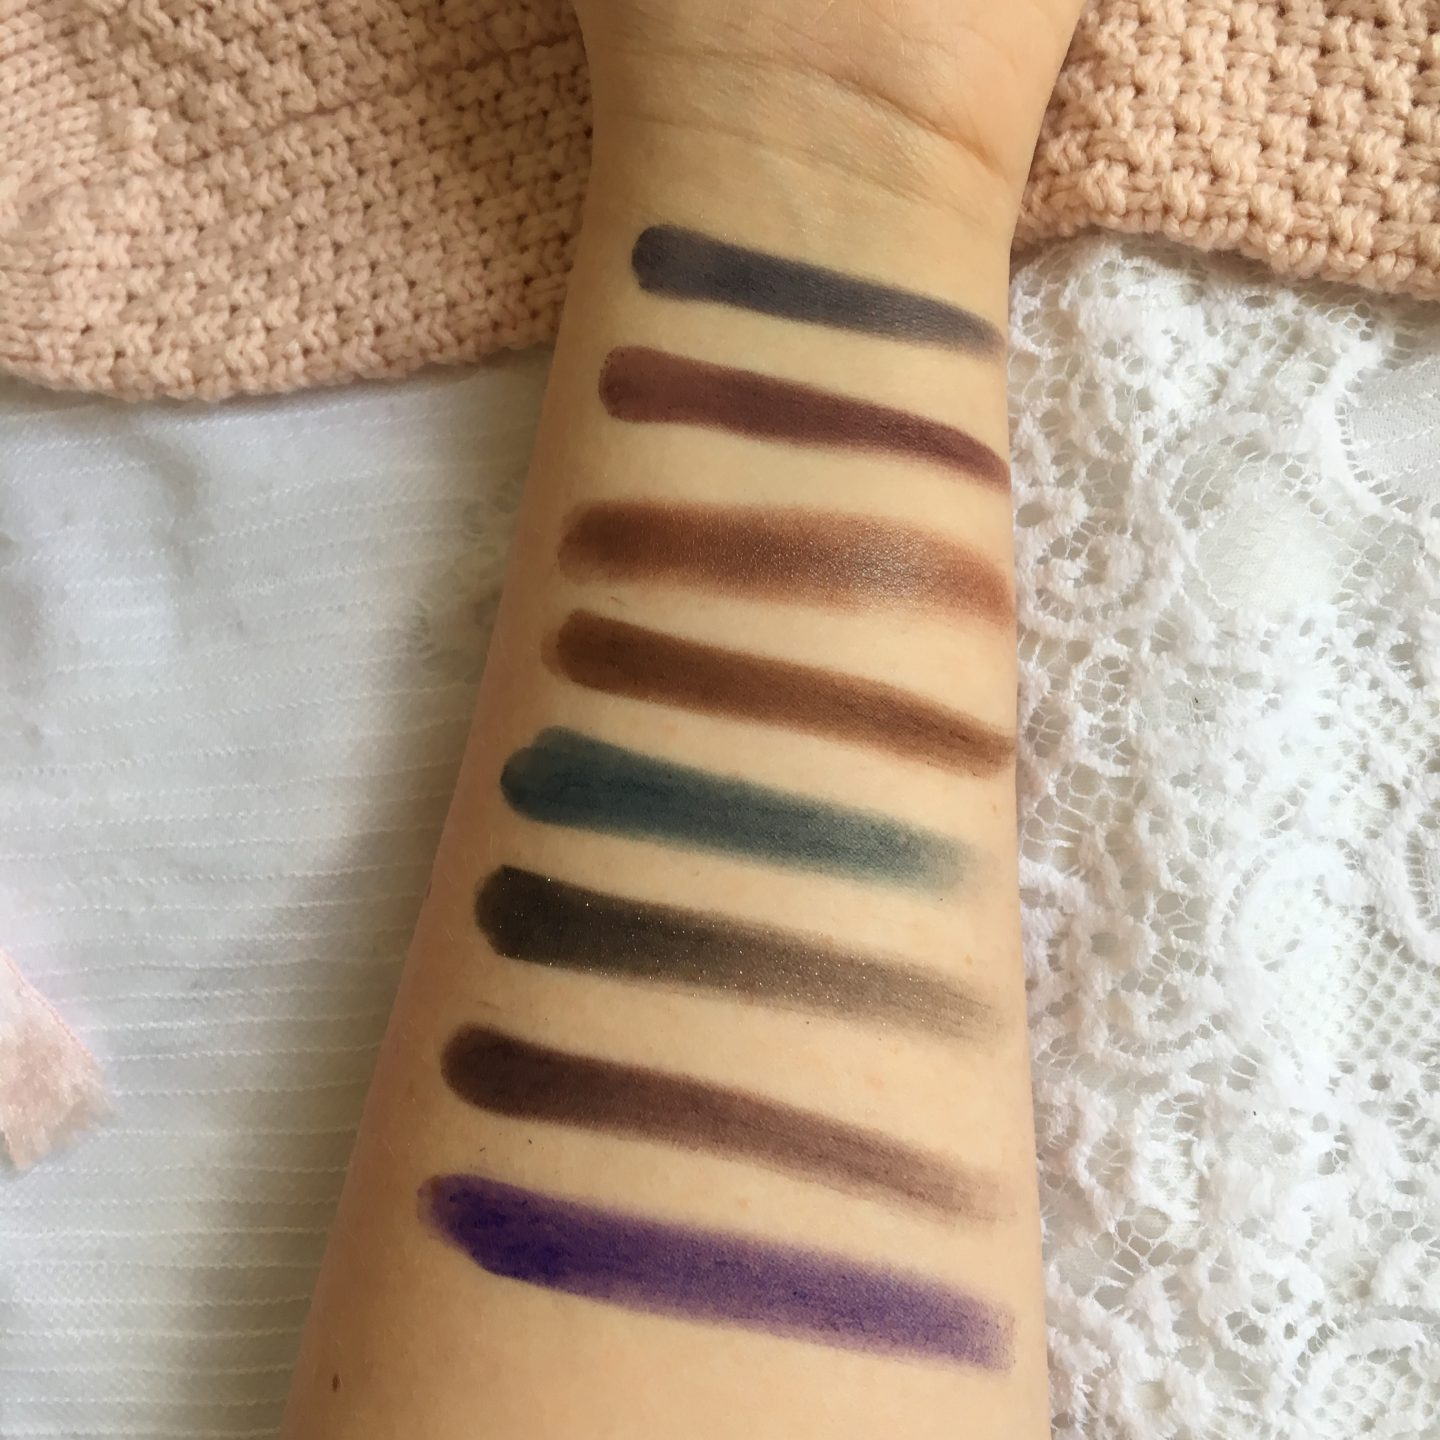 NYX Professional Makeup is Coming to Debenhams?! | Row 2 Swatches